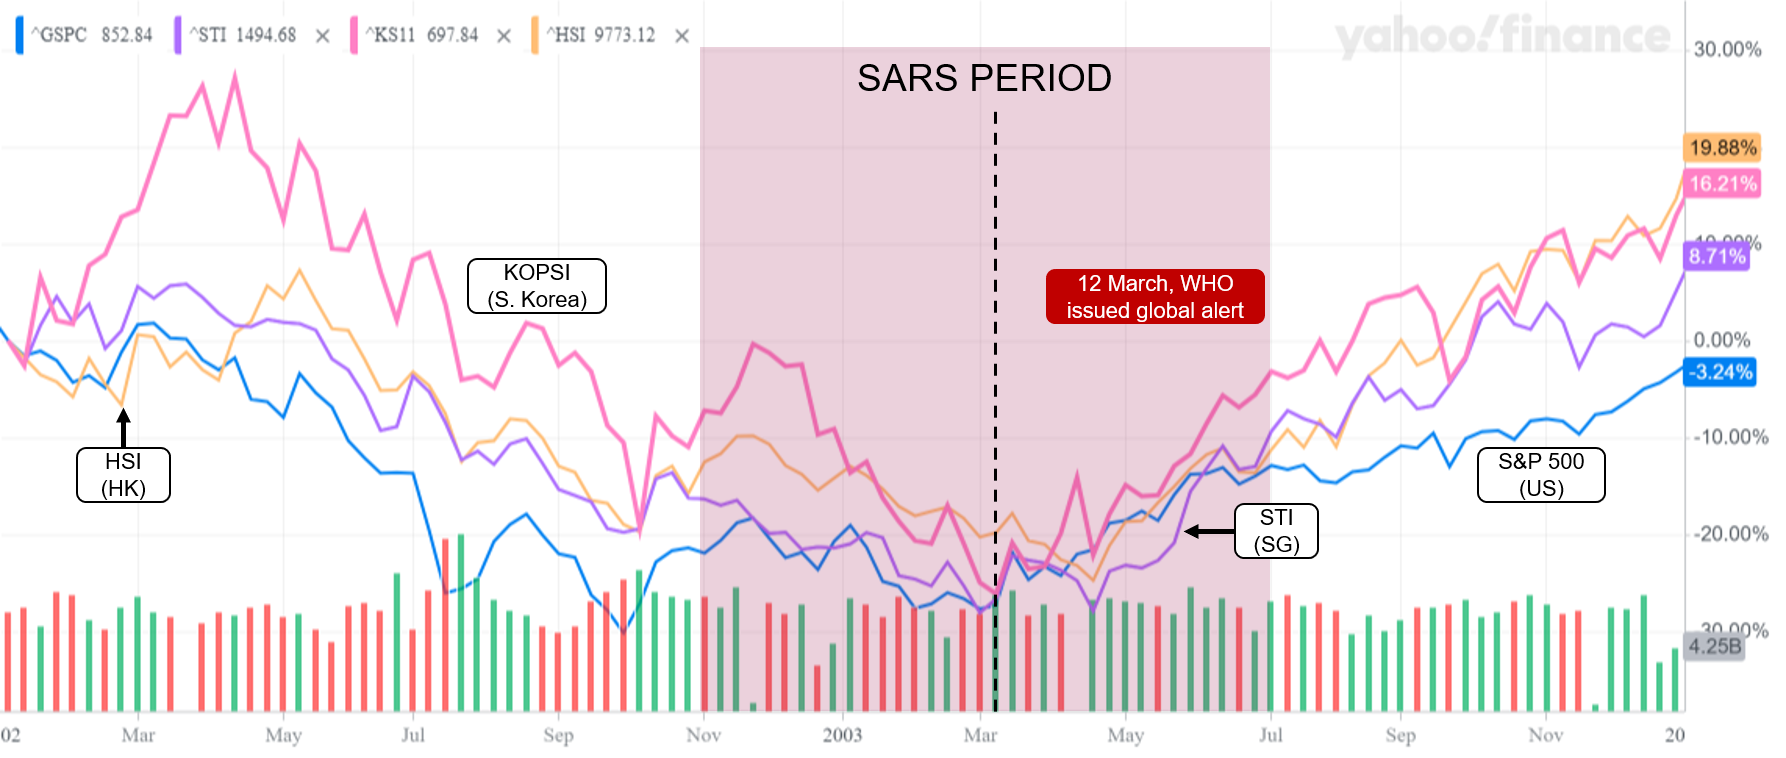 Wuhan Virus SARS Stock Price Index